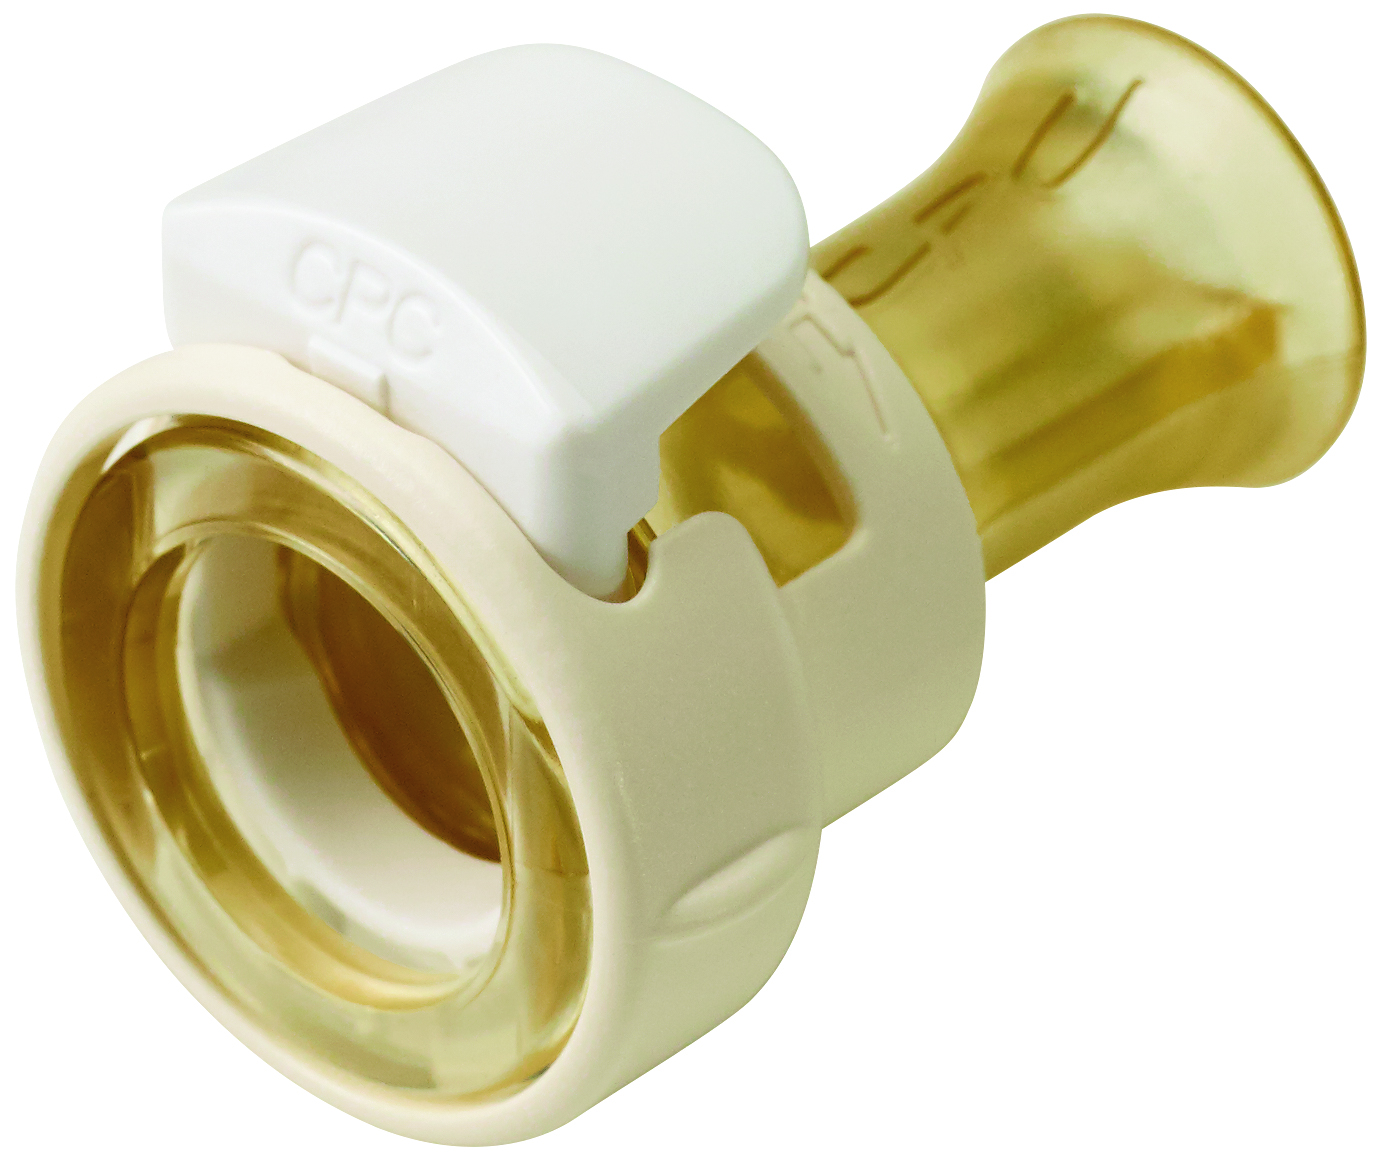 MPC Sealing Cap With Lock